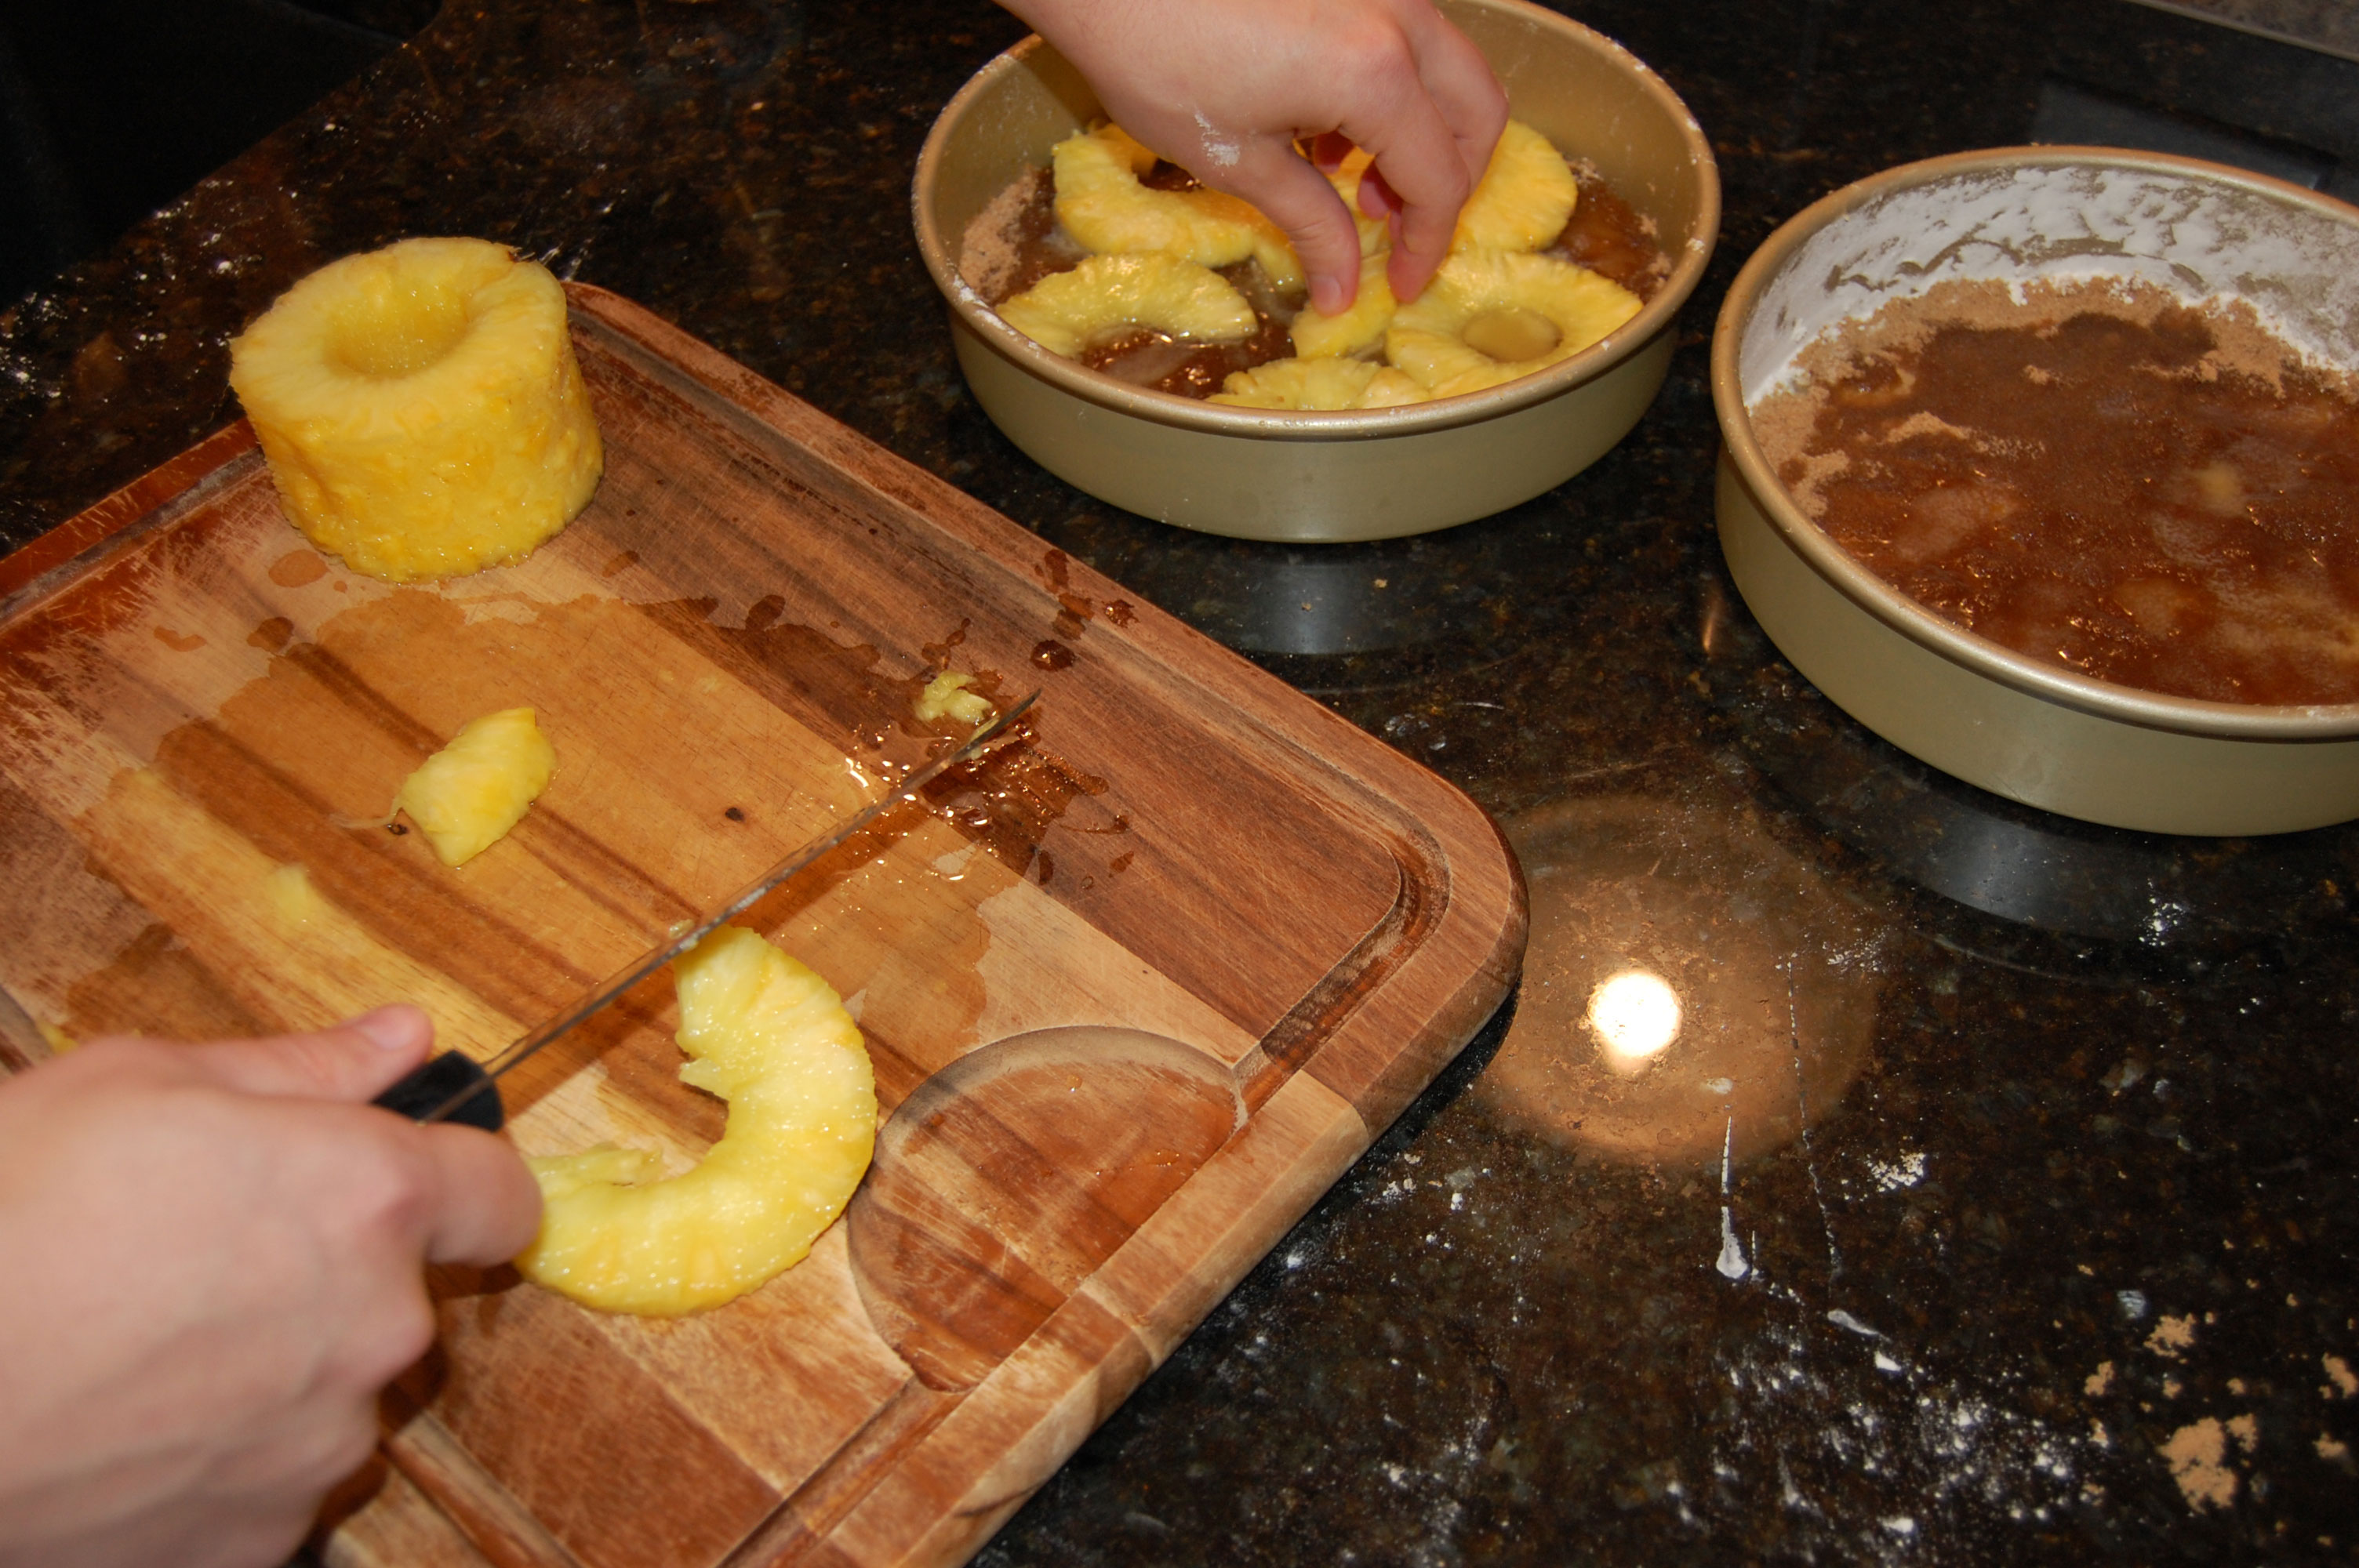 Putting Pineapples Into the Cake Pan